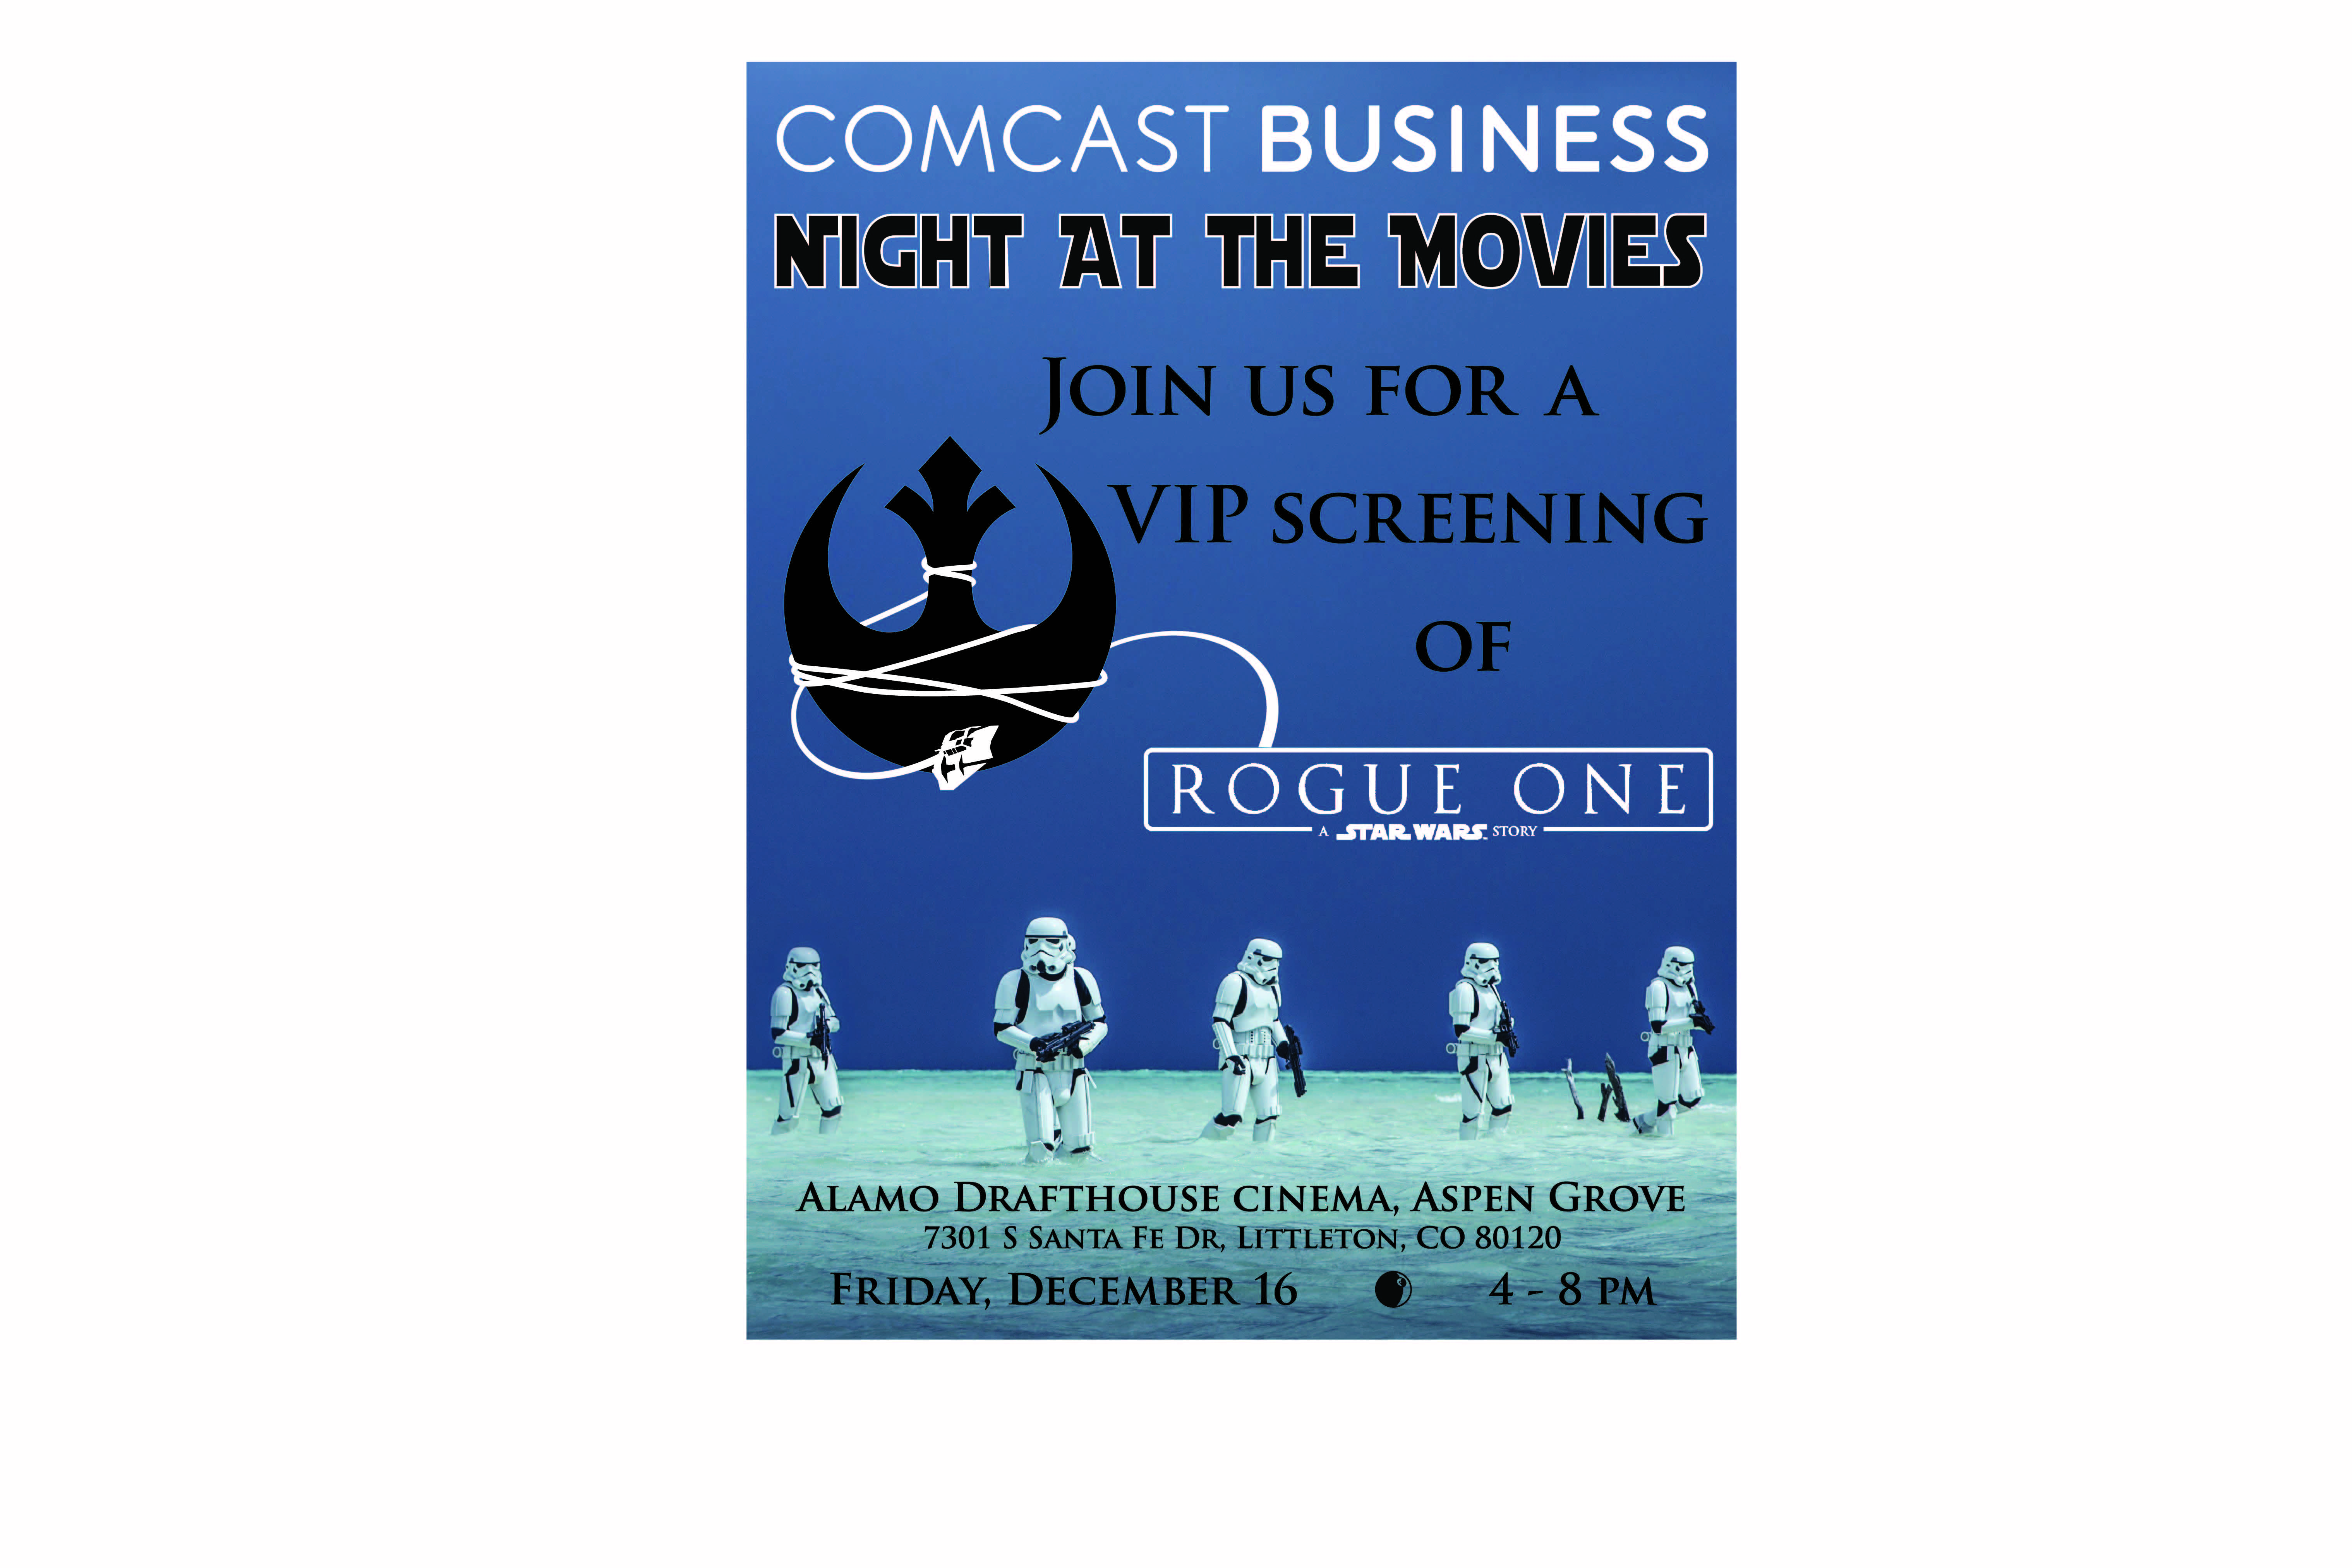 Comcast Business Night At The Movies